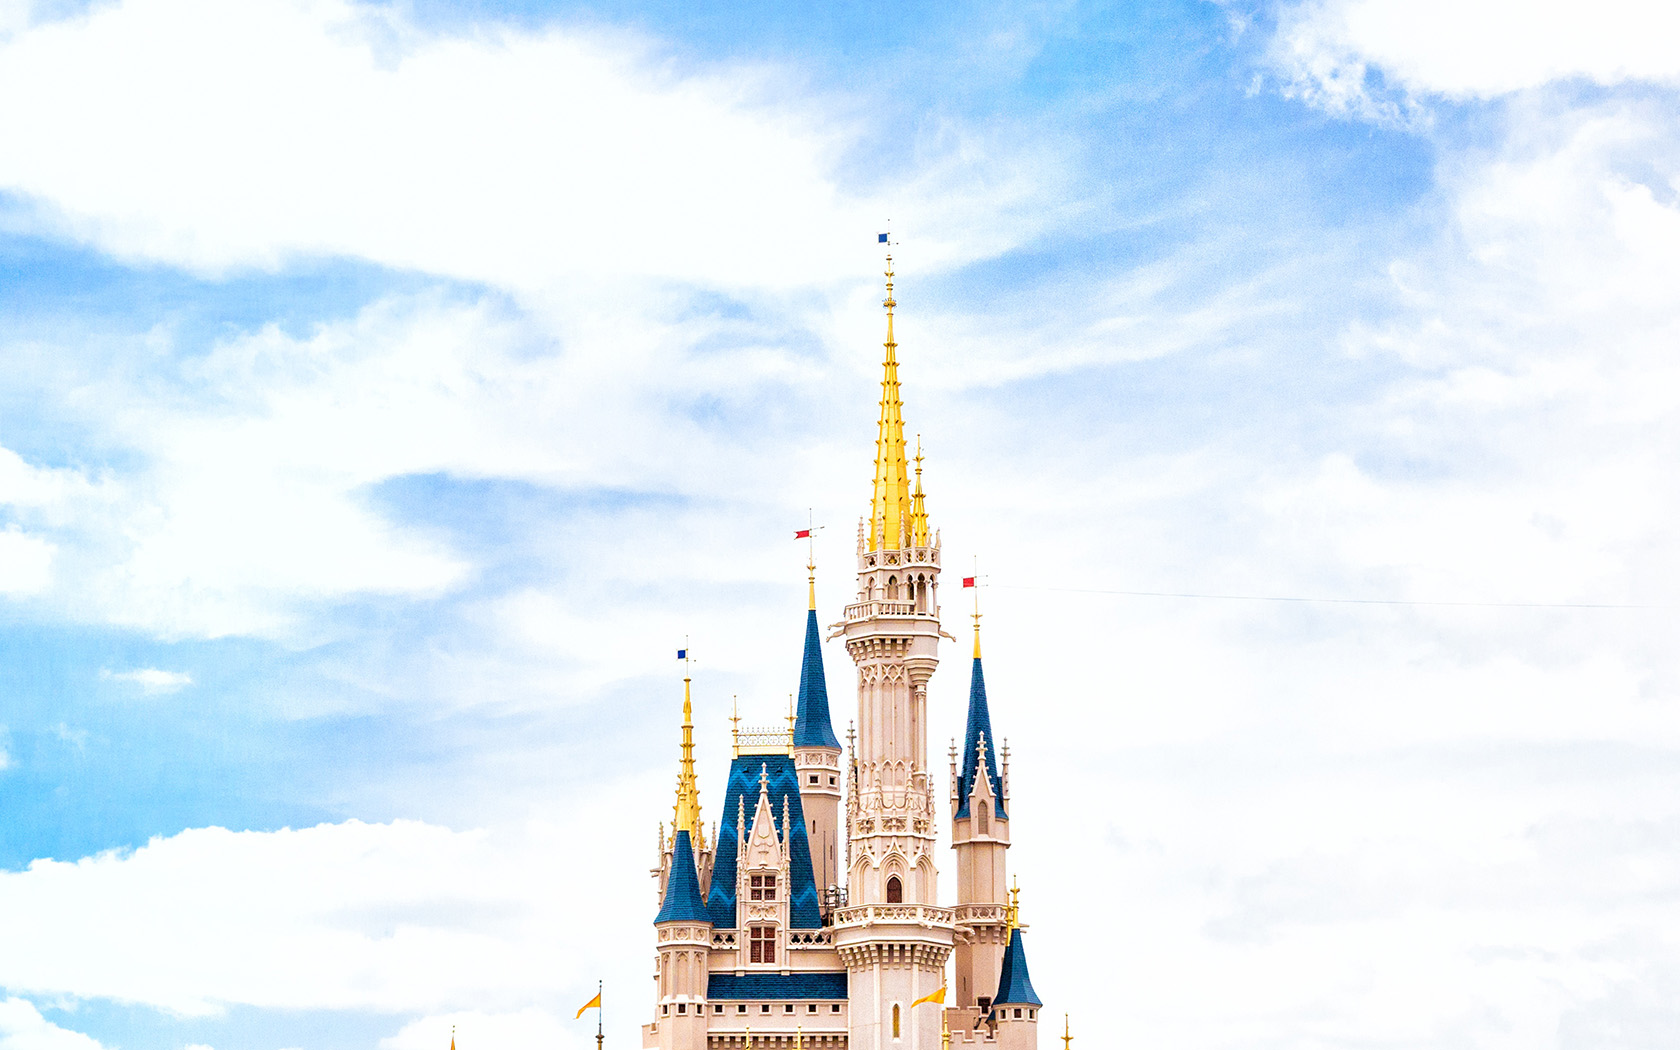 Fall Wallpaper For Iphone 7 Nn96 Disney World Castle Sky Wallpaper